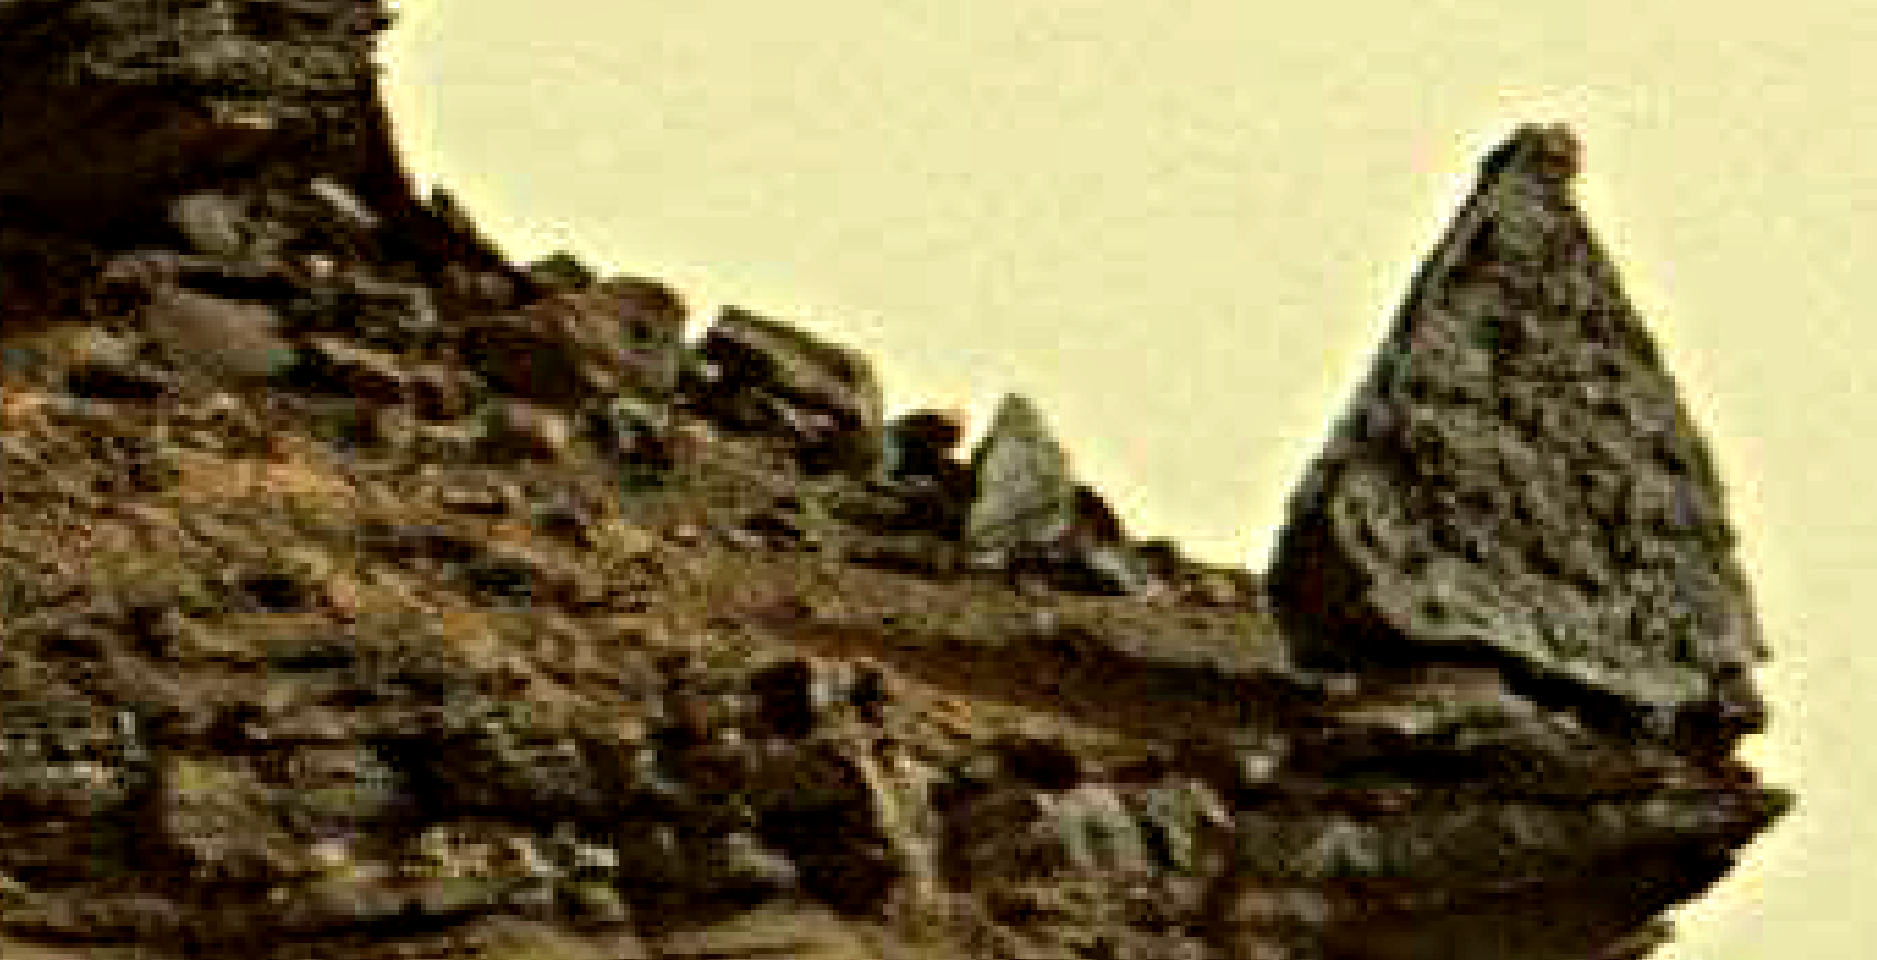 mars sol 1419 anomaly artifacts 2 was life on mars